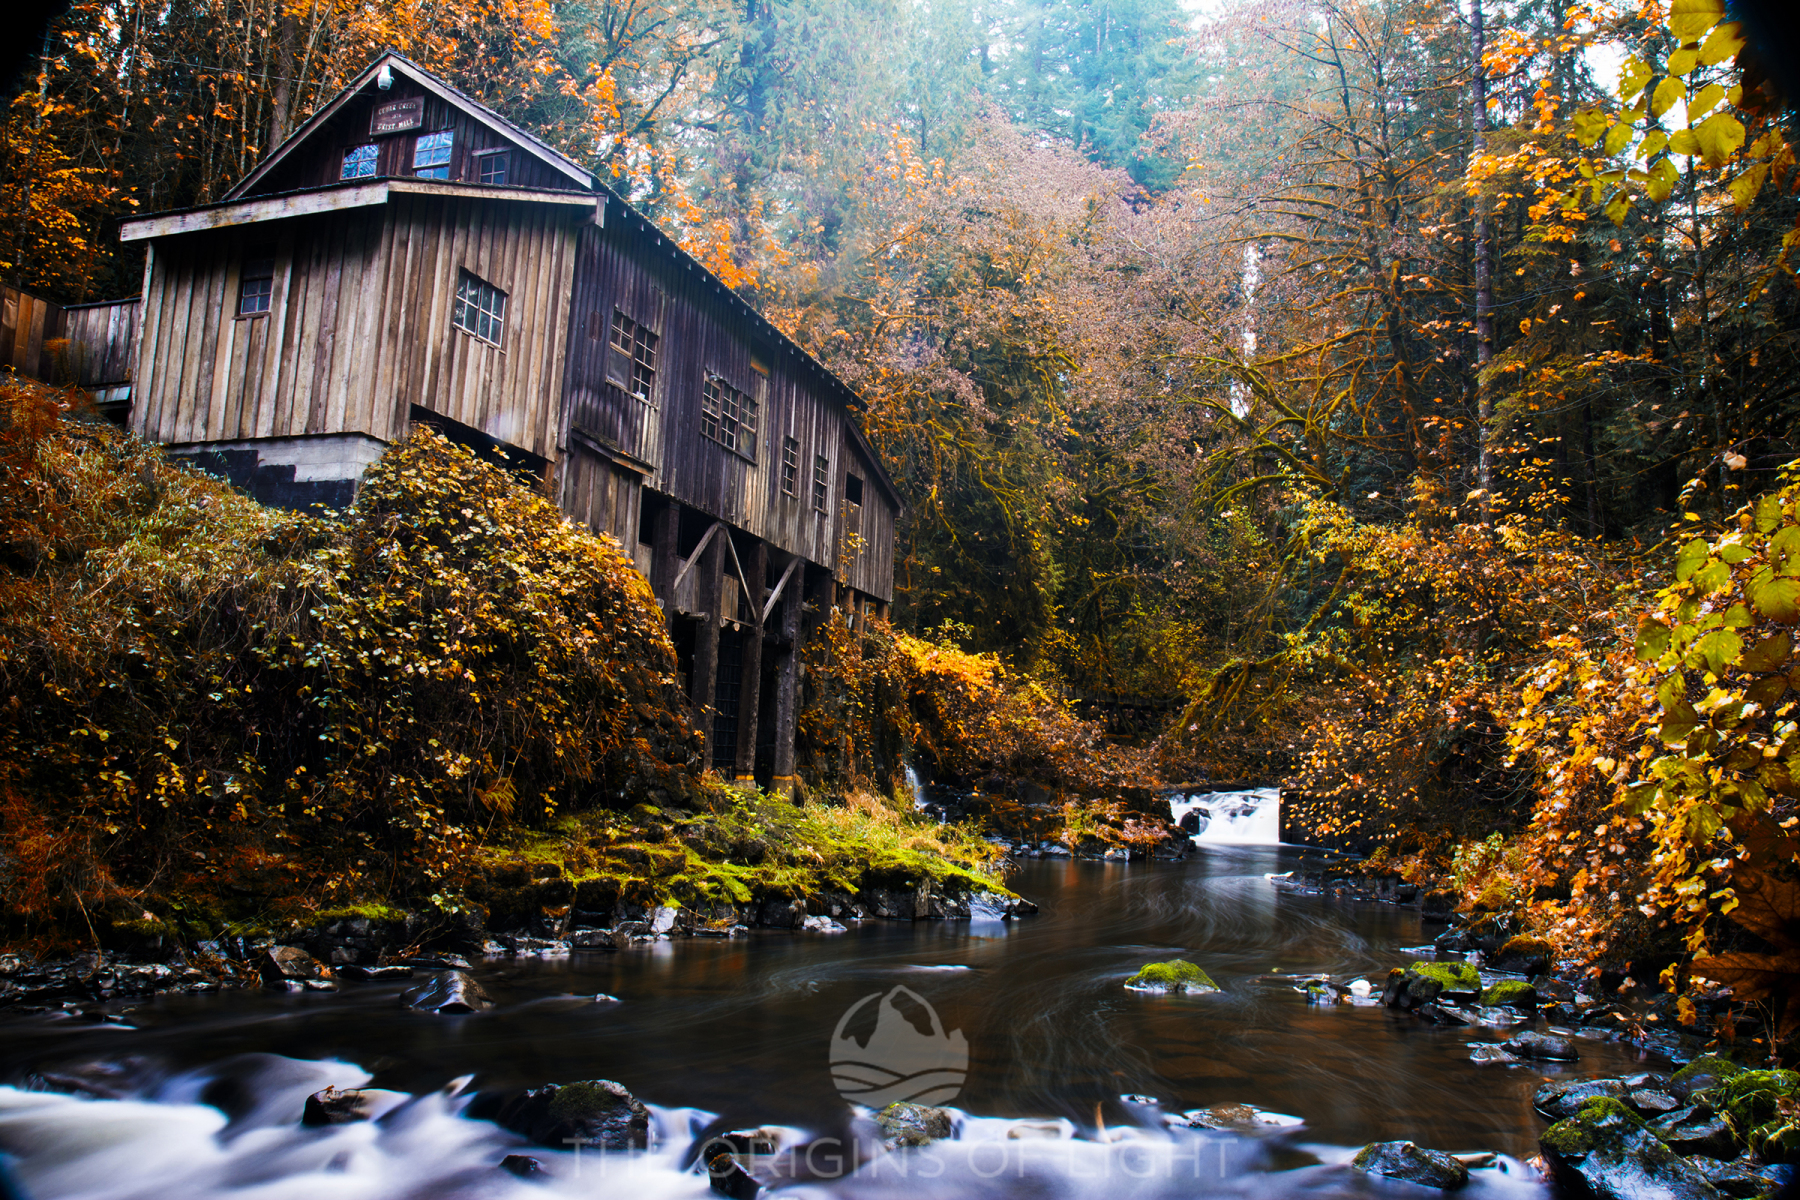 Cedar Grist Mill, Washington, in the Autumn